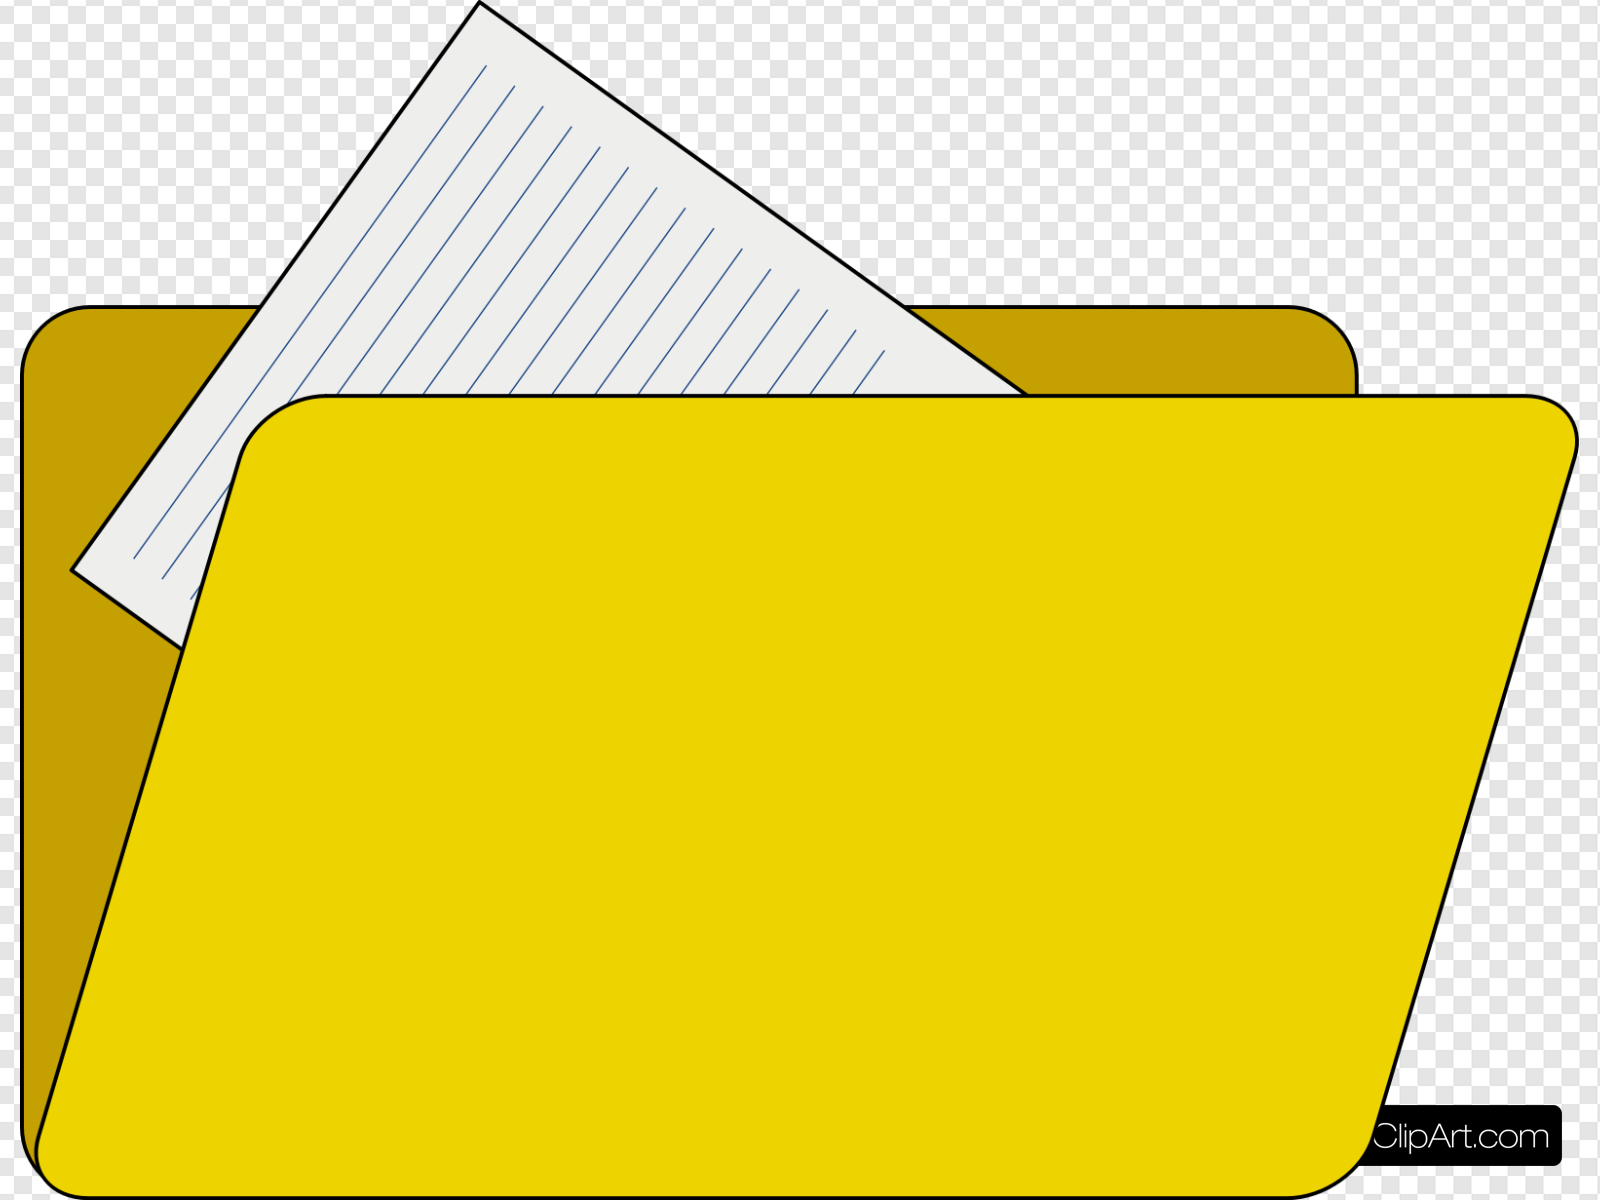 Folder With File Icon Clip art, Icon and SVG.